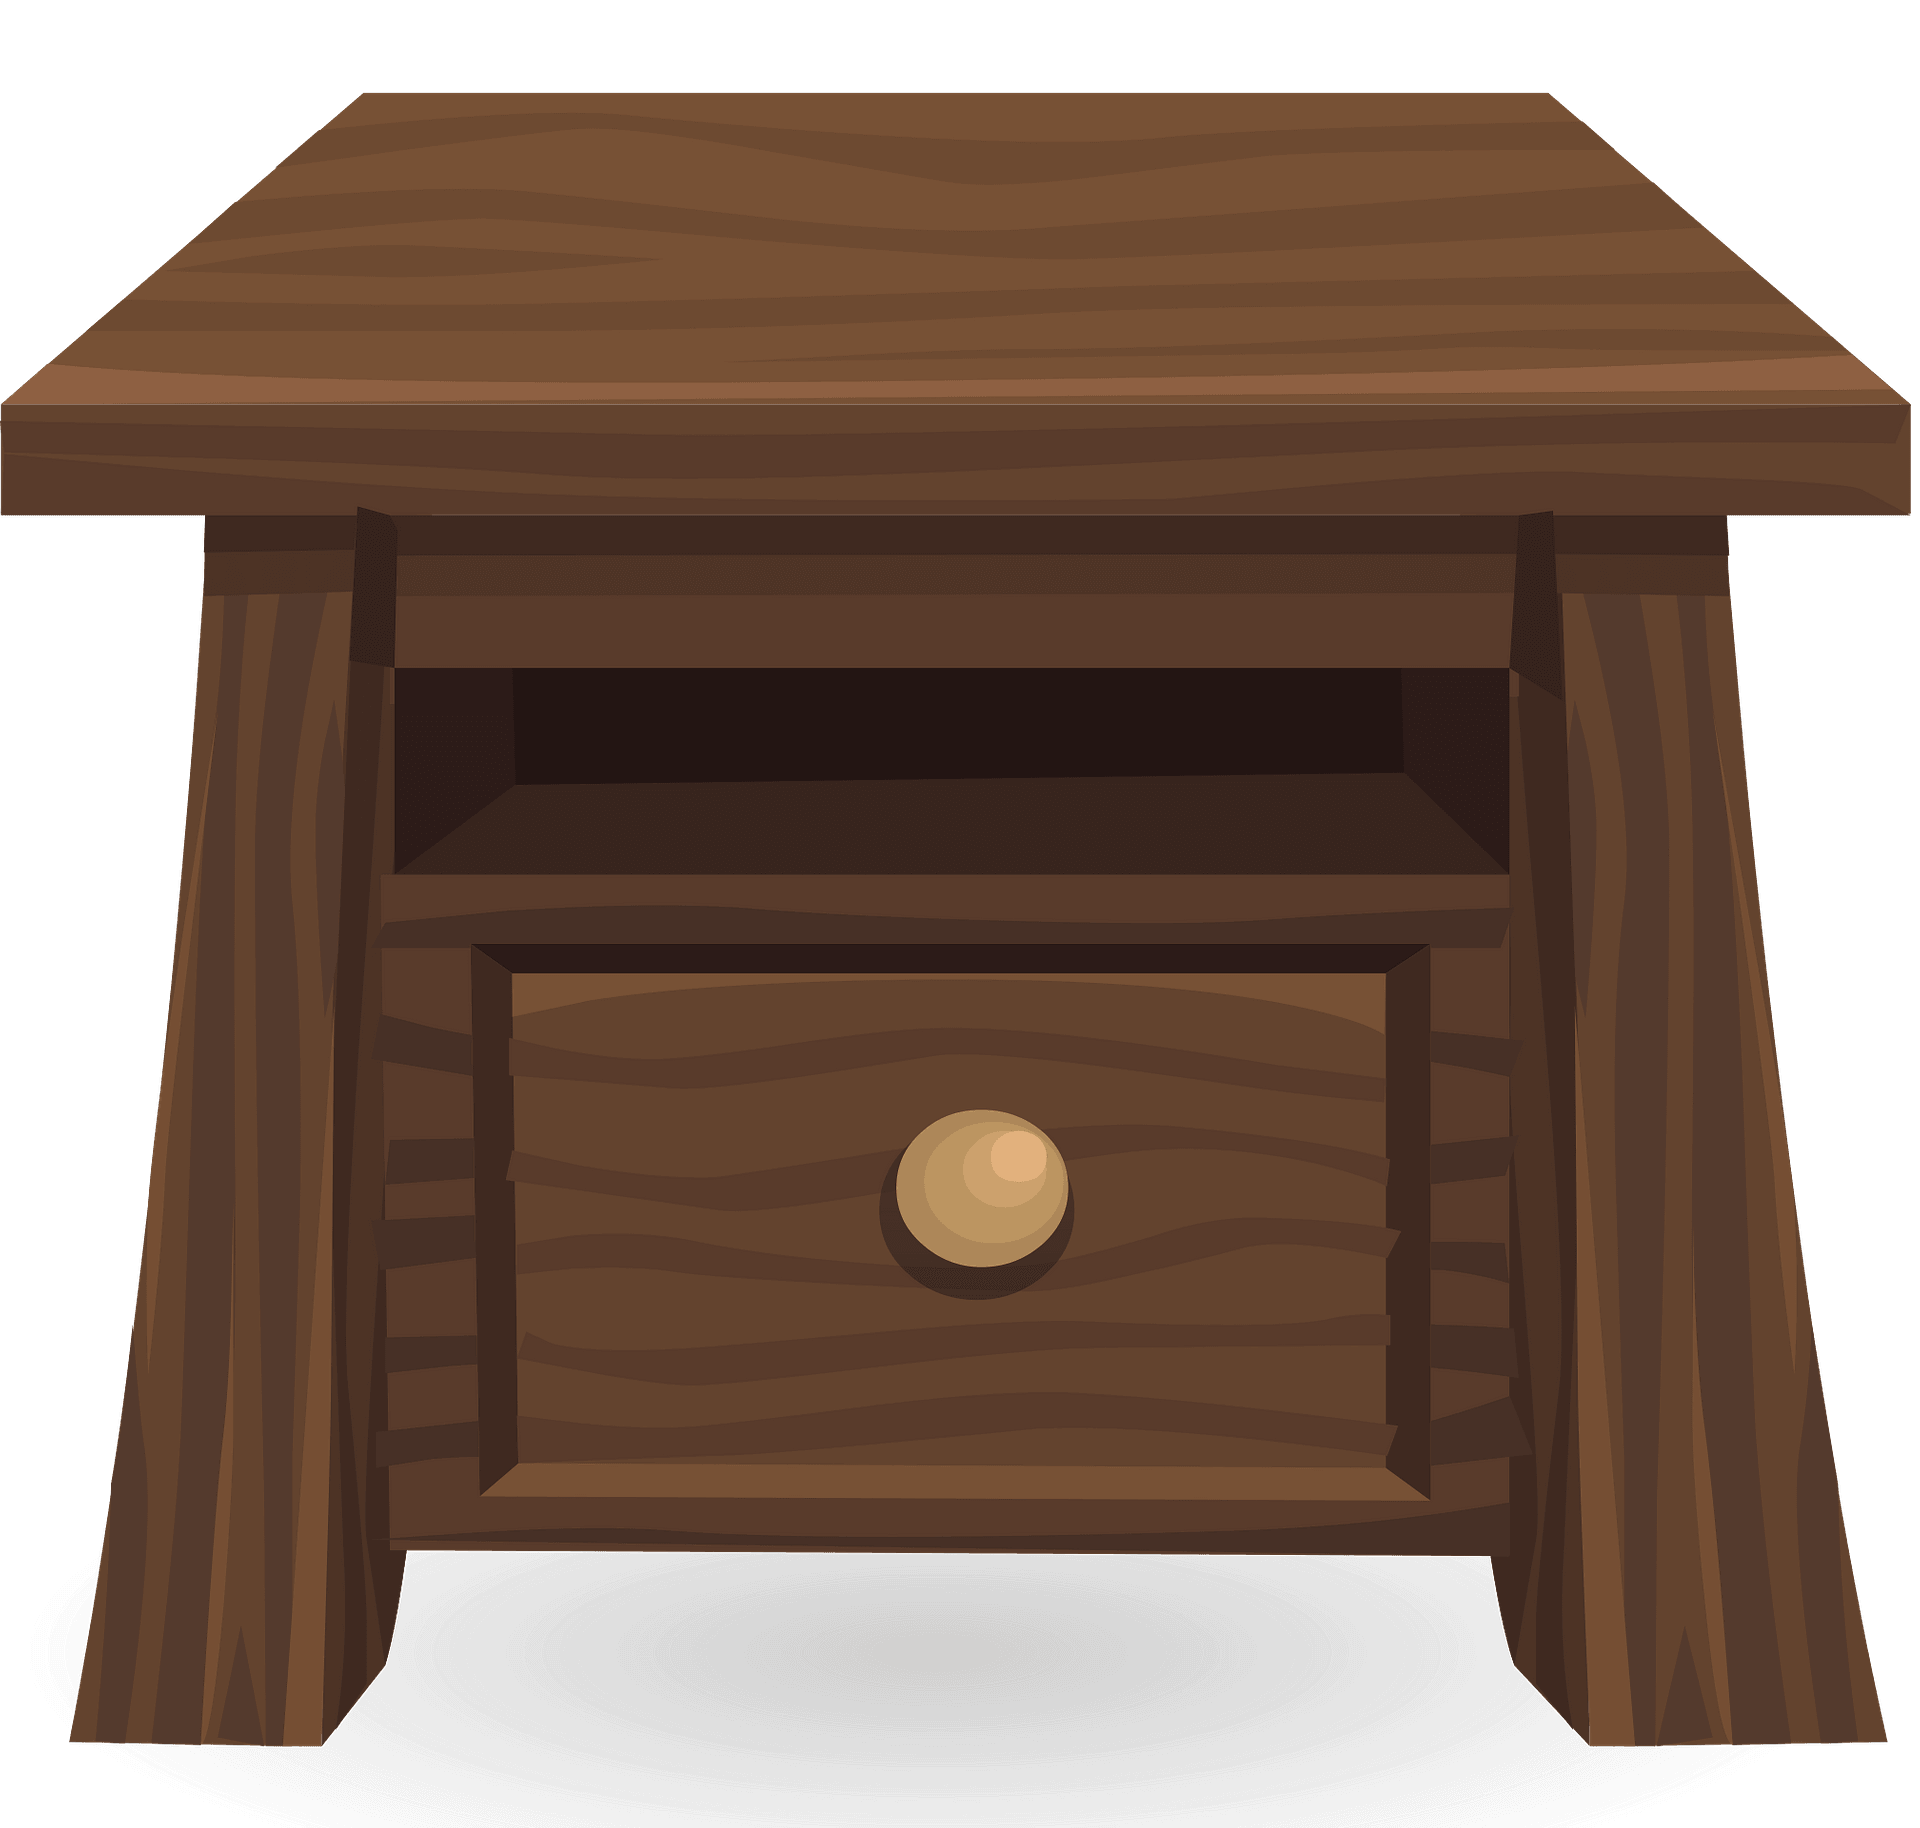 Picture of: Furniture Sidetable Wood Side Table Clipart Free Download Transparent Png Creazilla